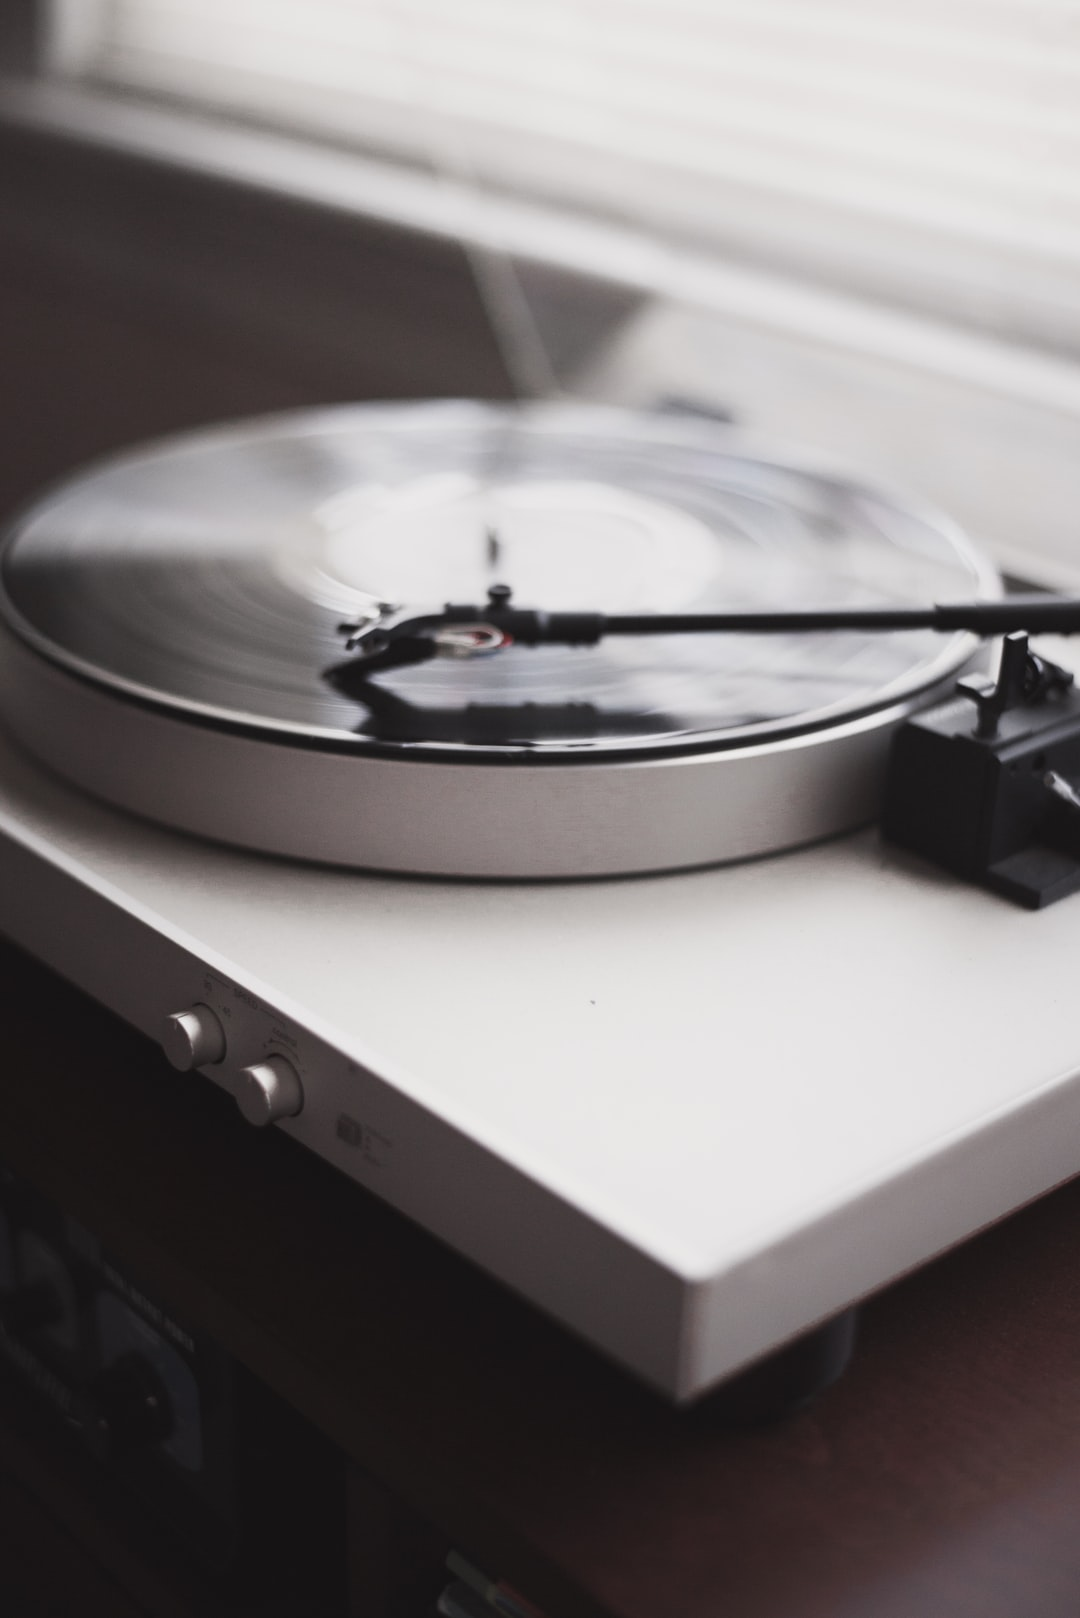 White turntable playing music